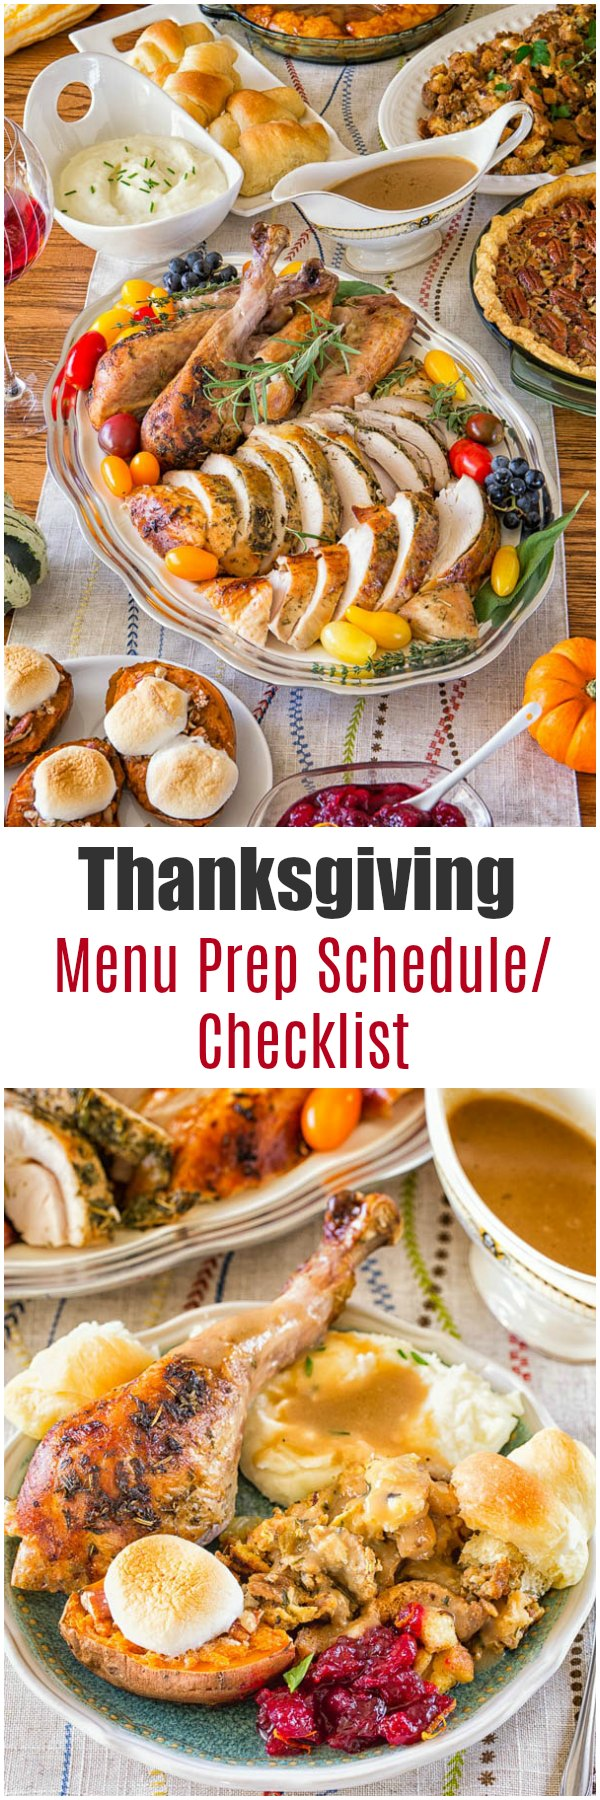 Hosting Thanksgiving this year? Don't fret, I have a perfect plan for you. I laid out the menu and prep plan/checklist, so you can enjoy a stress-free hosting.